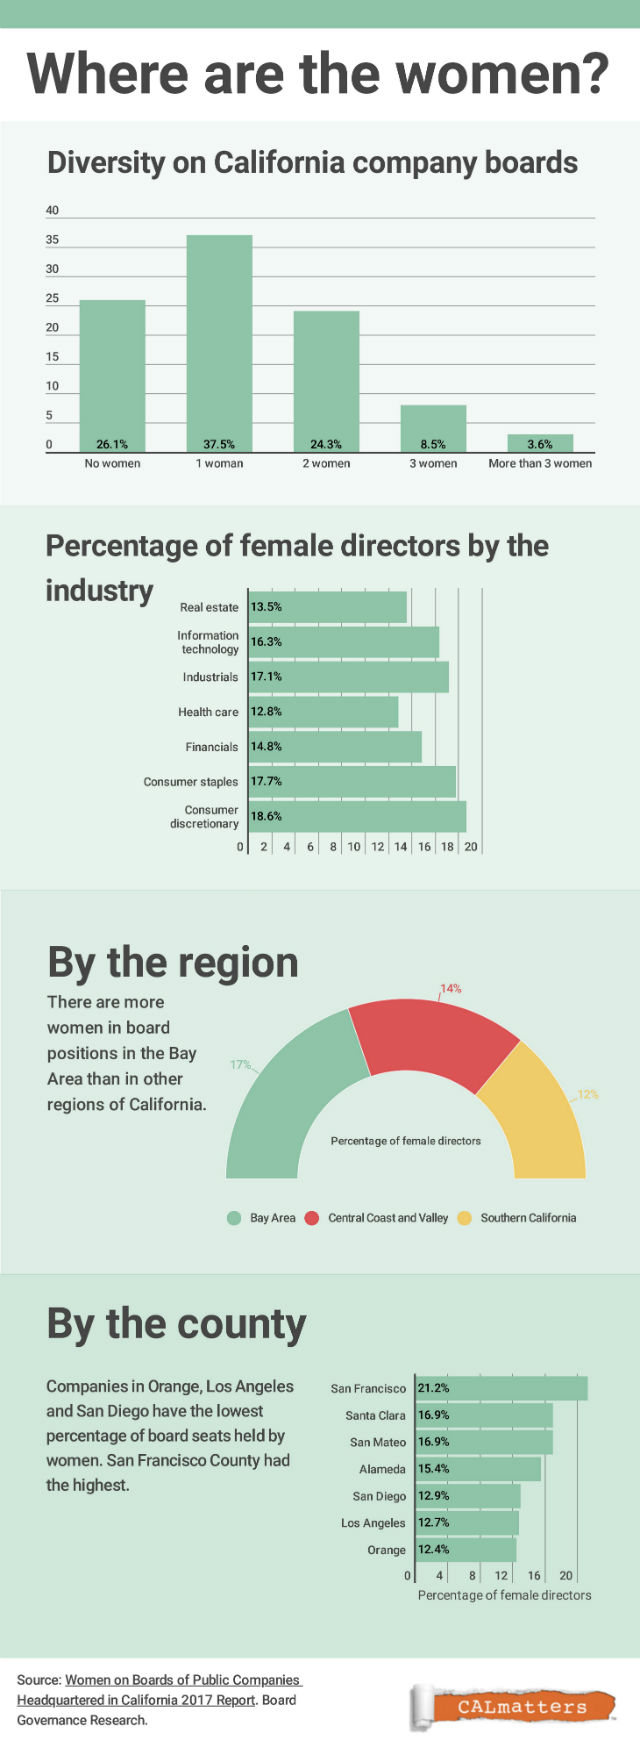 Chart provides information about diversity on boards